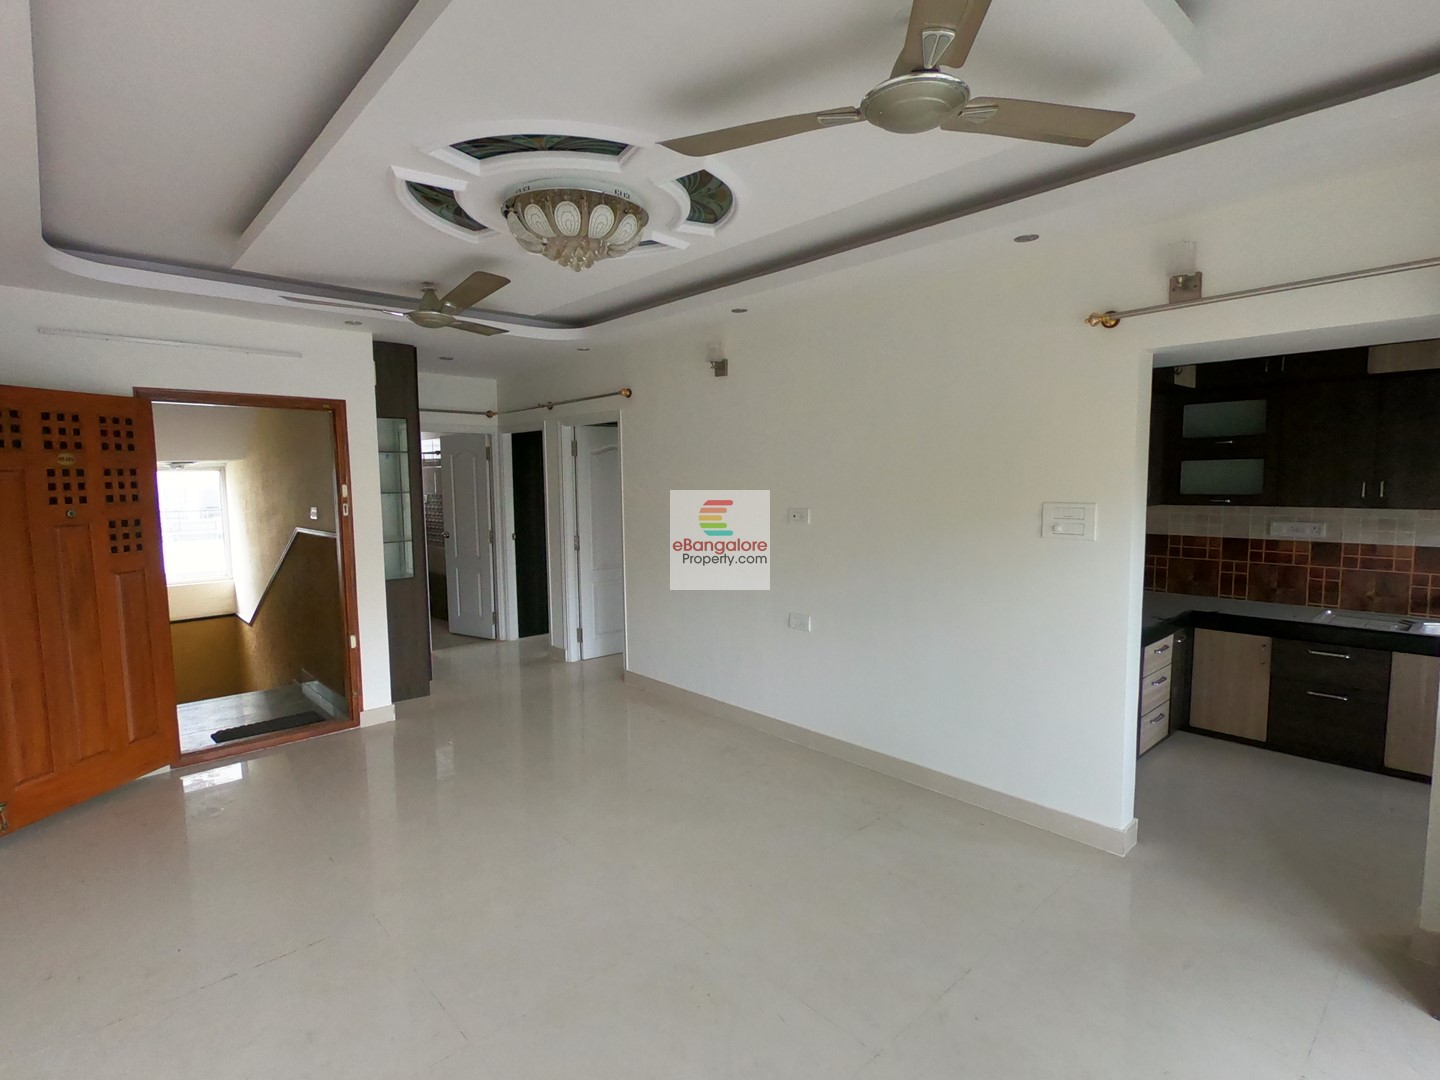 HBR Layout – 2BHK Semifurnished Flat for Sale – Posh Location, Opp. to HBR BDA complex